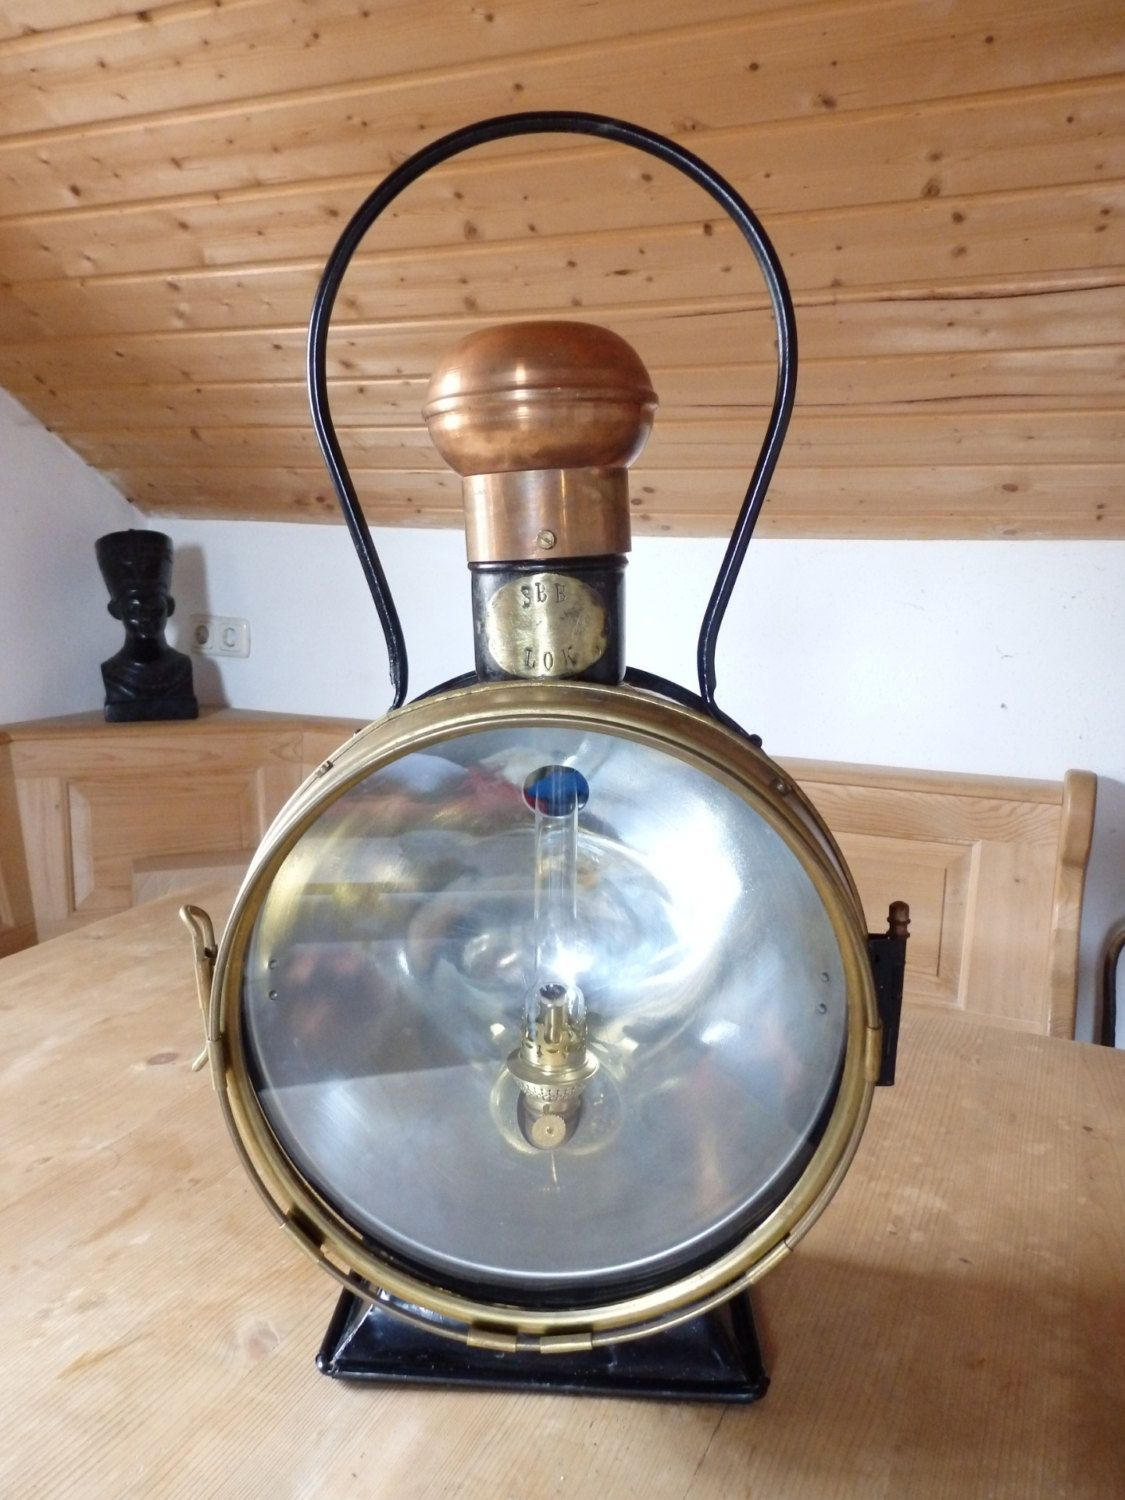 SBB LOK UNGER steam Locomotive train lamp kerosene lamp Oil Railroad Lantern, Bahnlampe, Lok Lampe, Lok Laterne, Bahn Laterne von werorowe auf Etsy